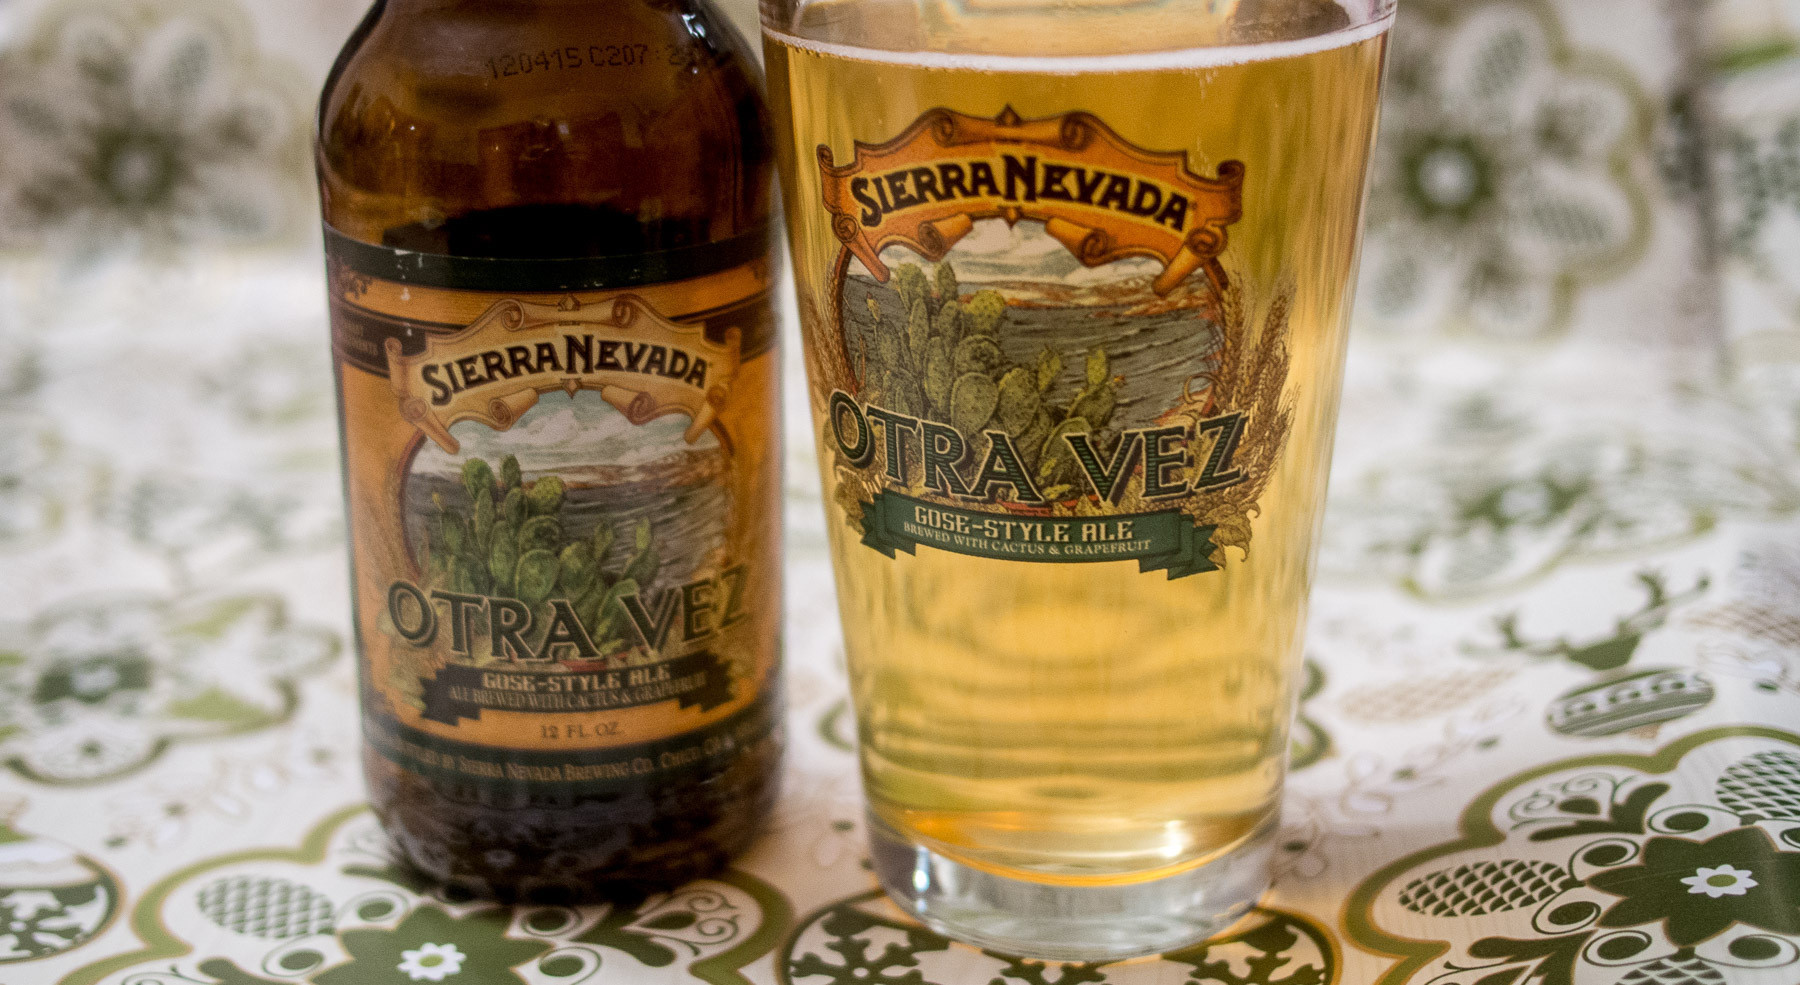 California Craft Beer Of The Month